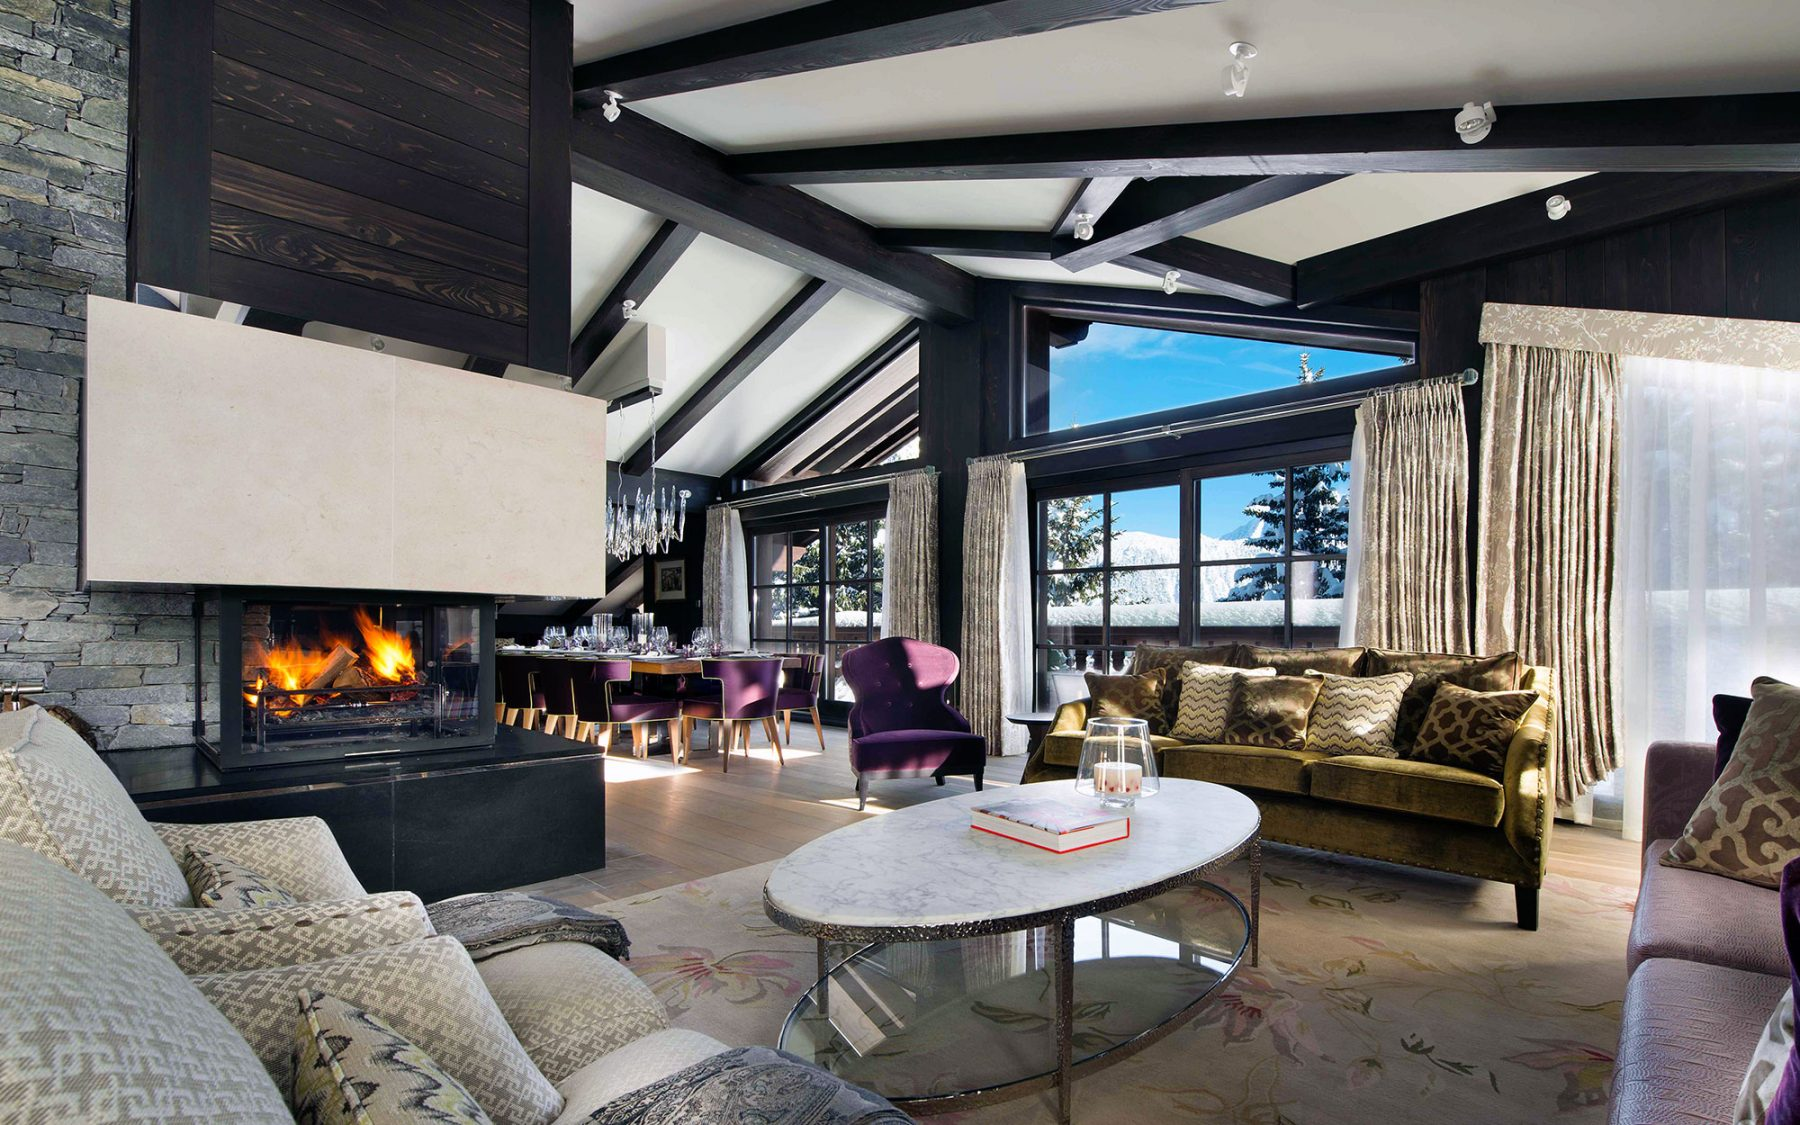 Chalet le coquelicot ski chalet interior design for Ski chalet home designs